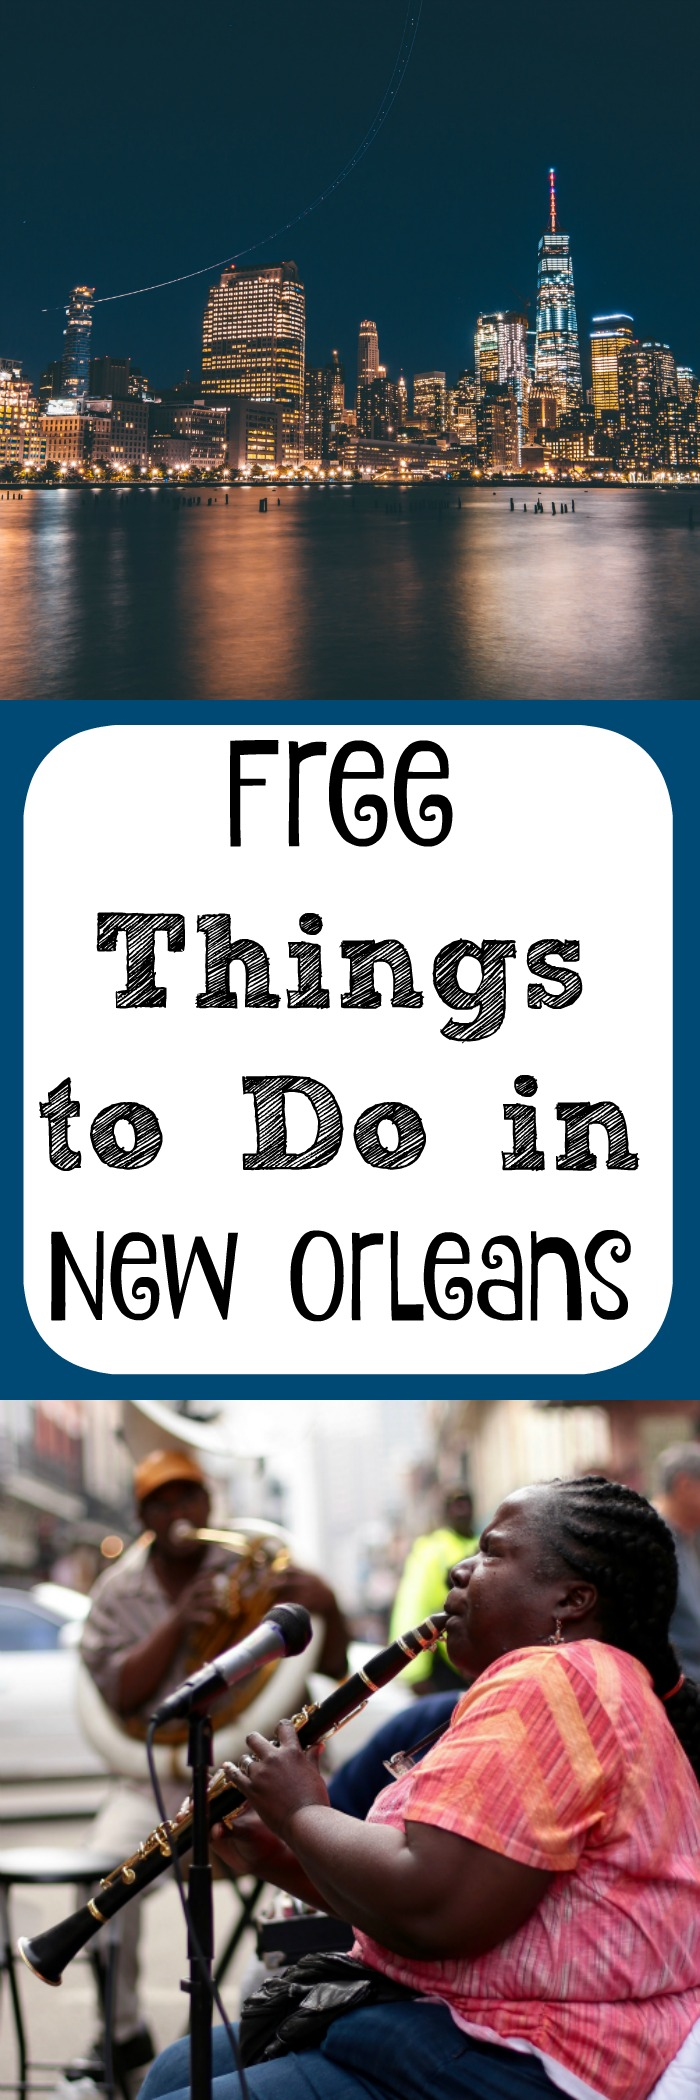 Heading to New Orleans? Trying to stay on a budget. Here are some free things to do in New Orleans to help save money and have fun